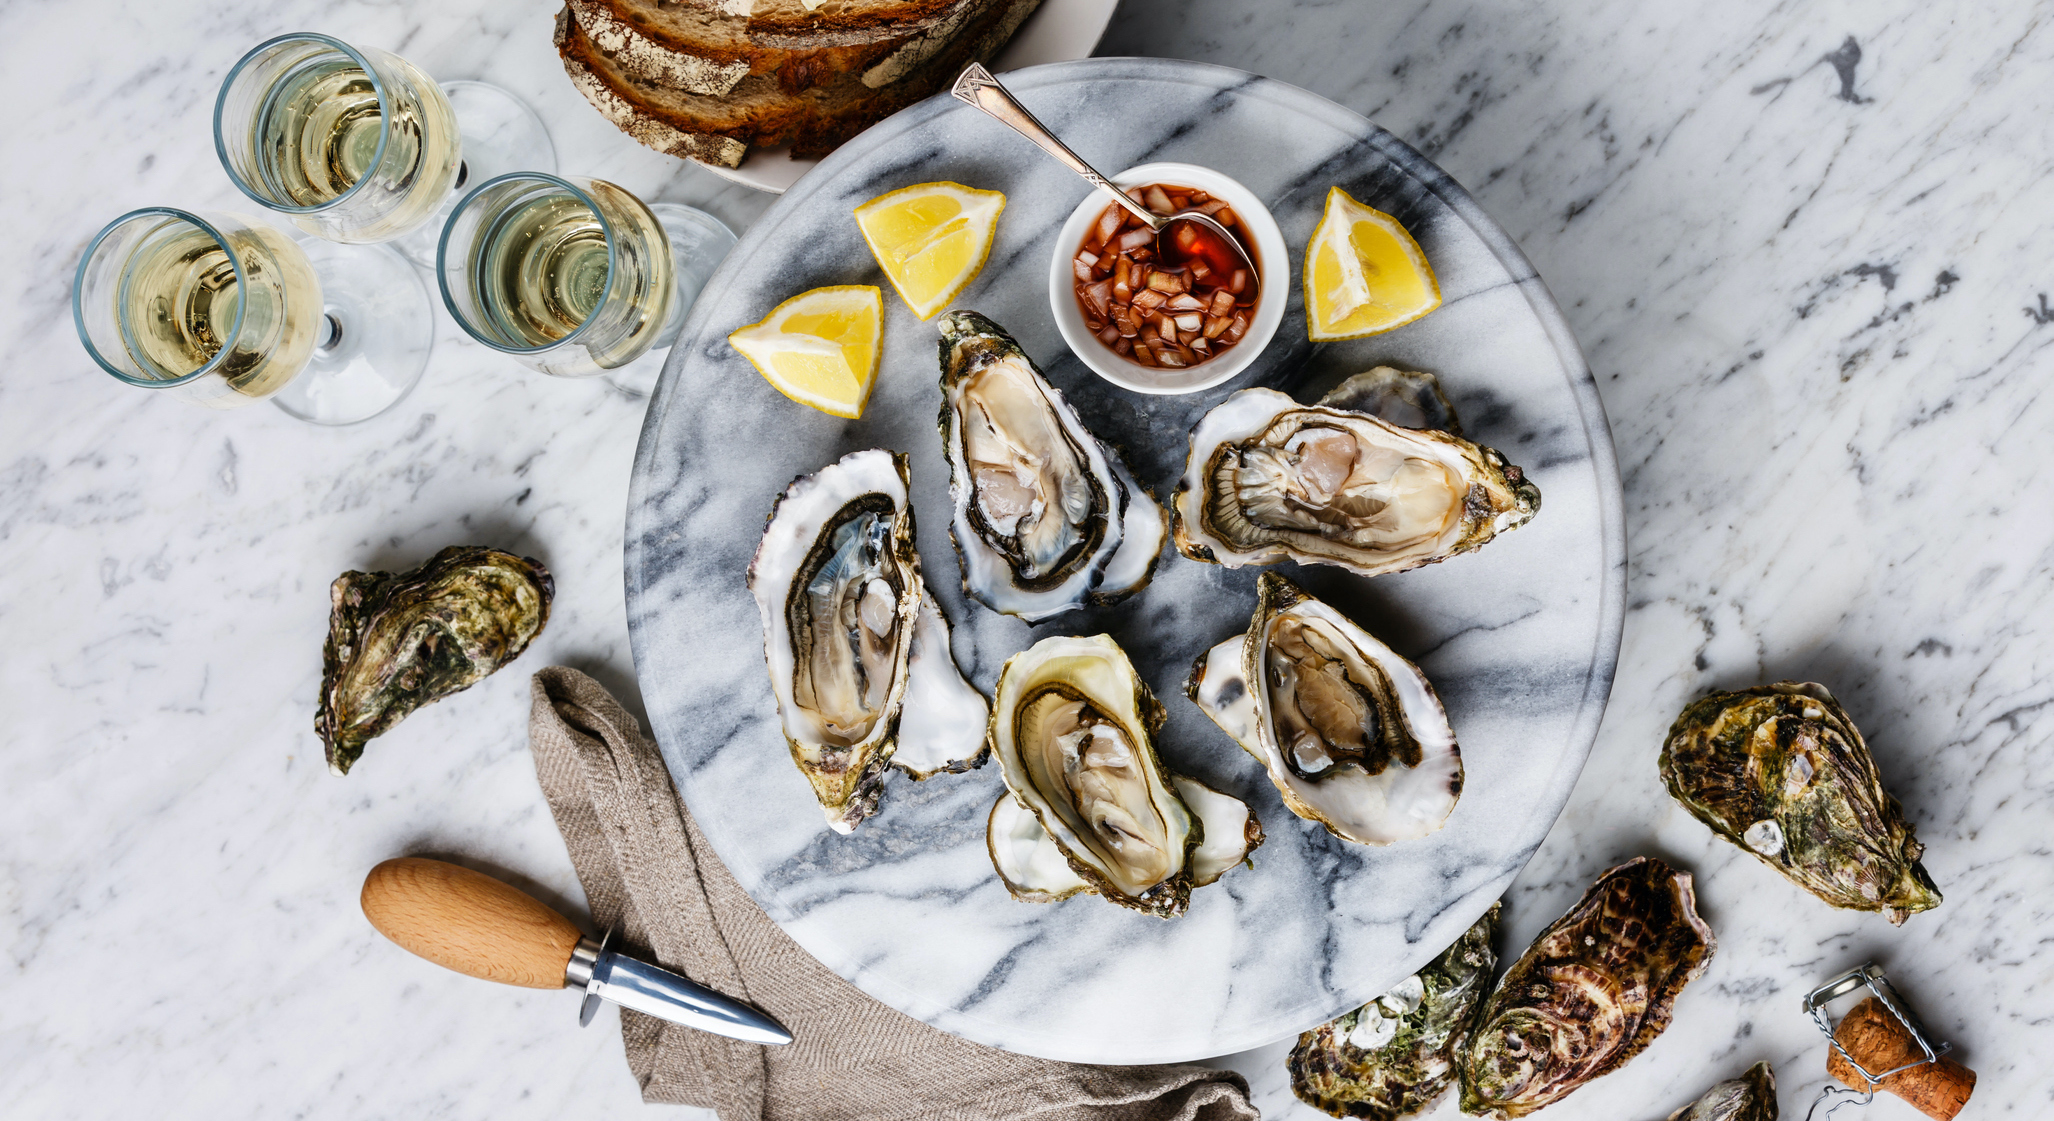 Open-Oysters-with-lemon,-bread,-butter-and-champagne-695621876 1416x2125